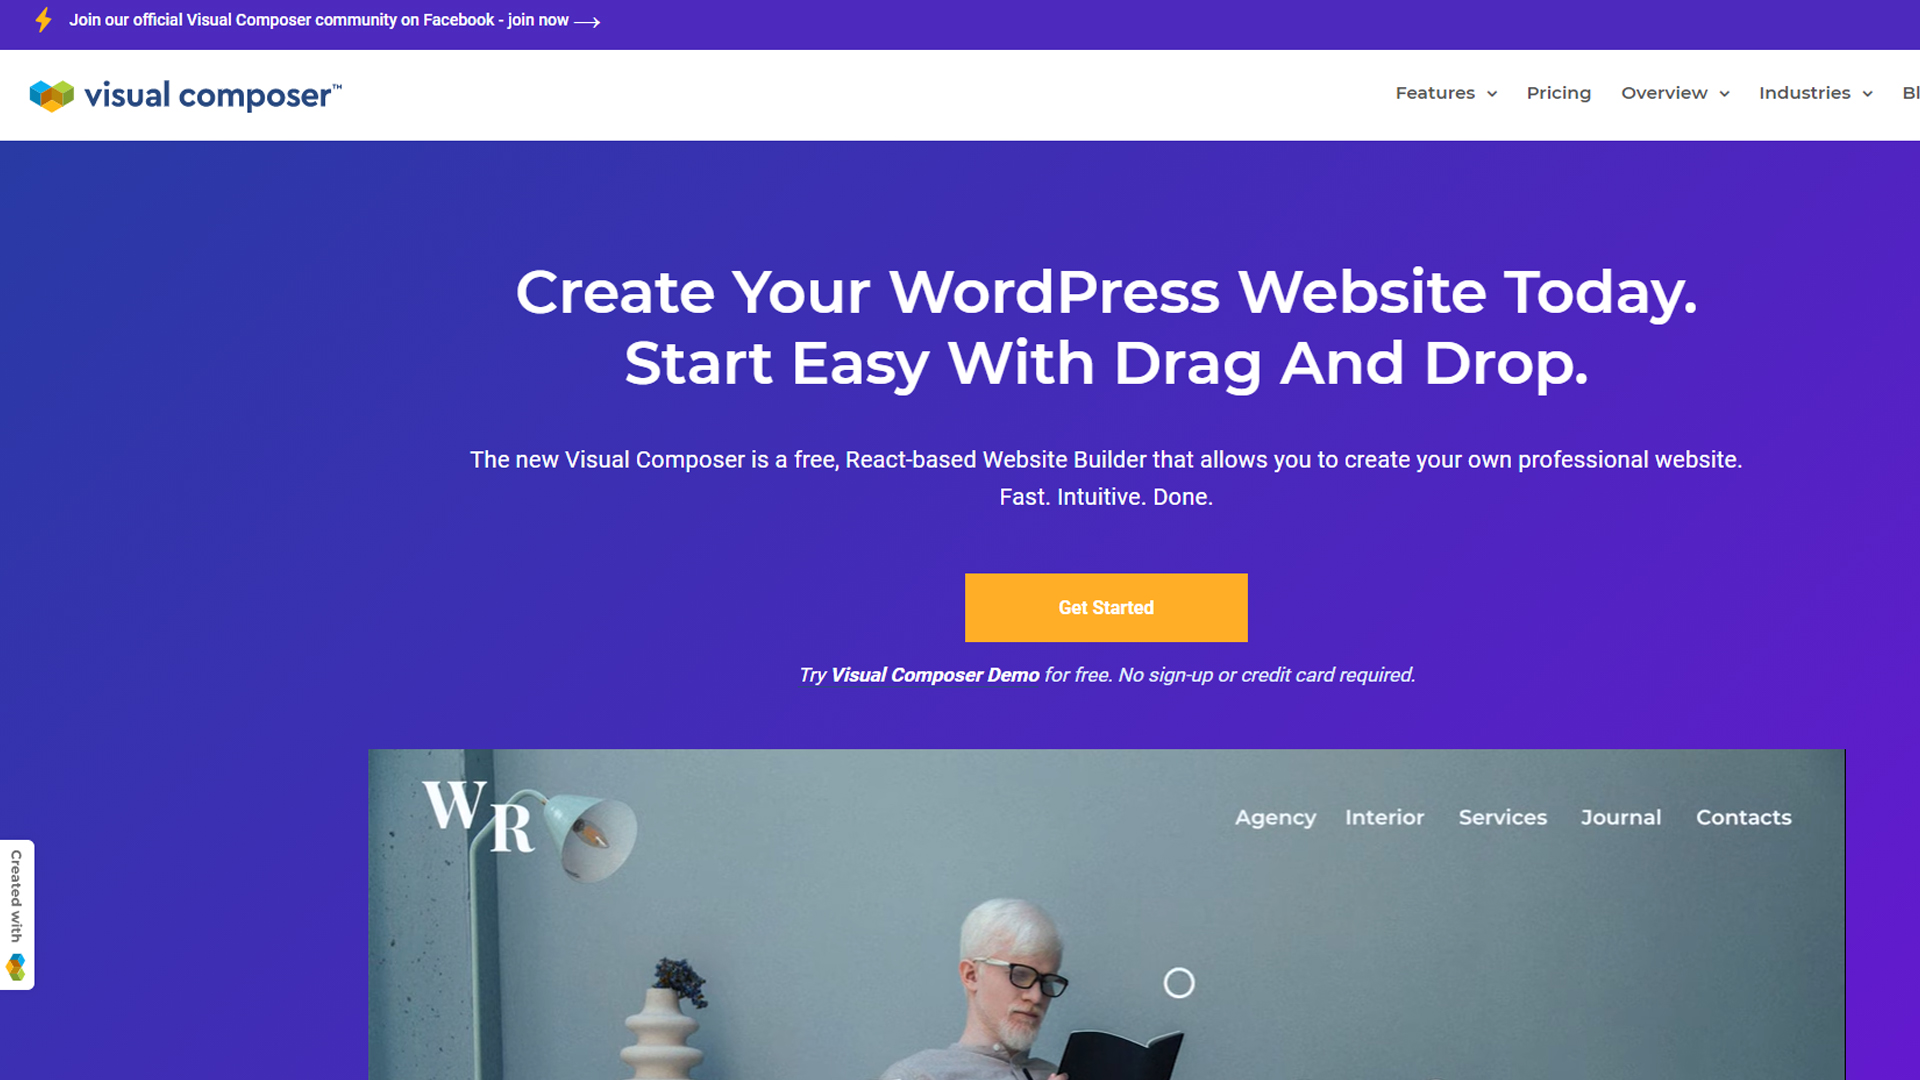 Visual Composer's homepage